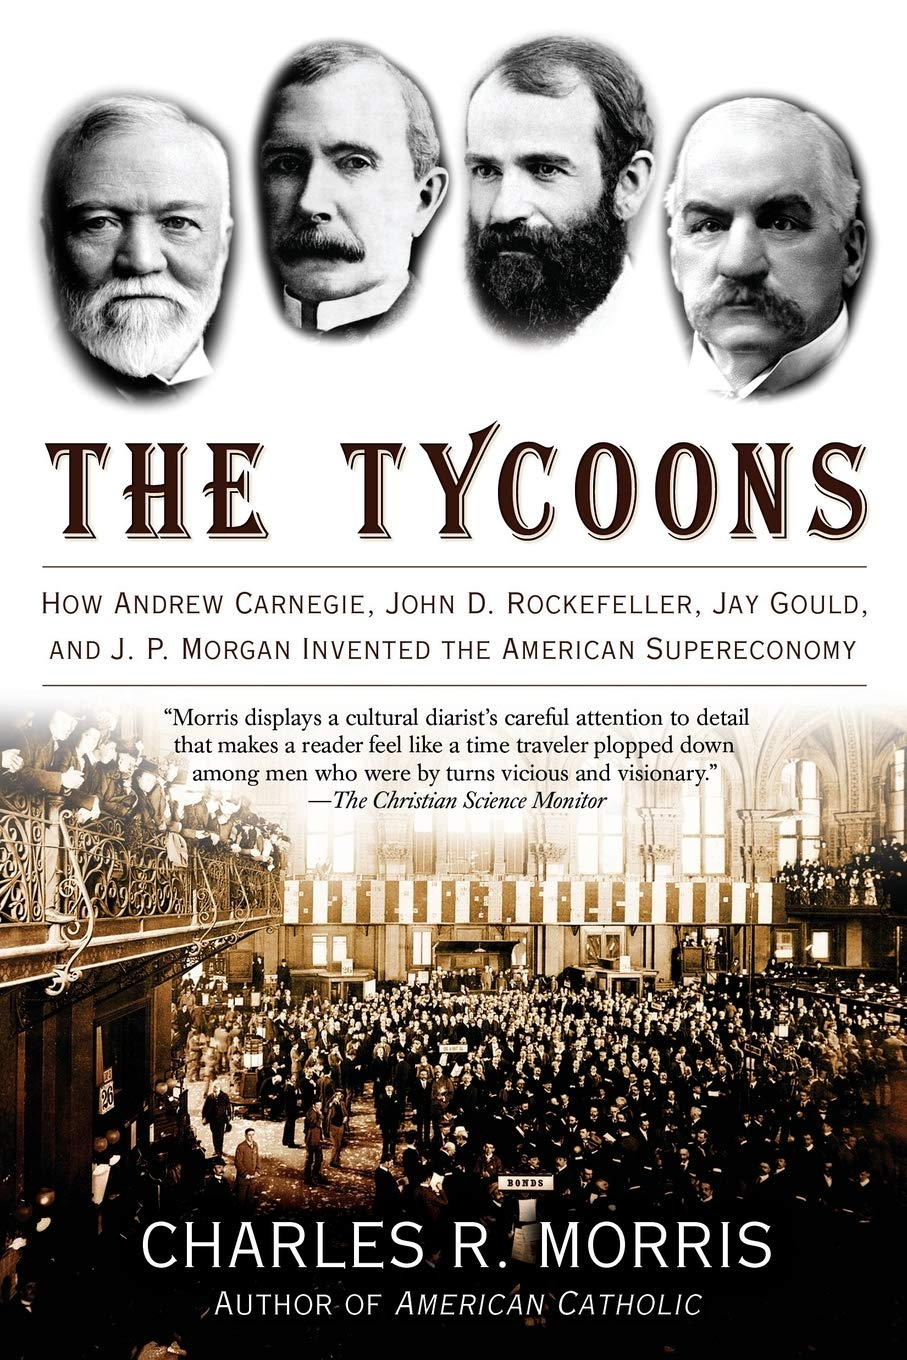 The Tycoons: How Andrew Carnegie, John D. Rockefeller, Jay Gould, and J.P. Morgan Invented the American Supereconomy